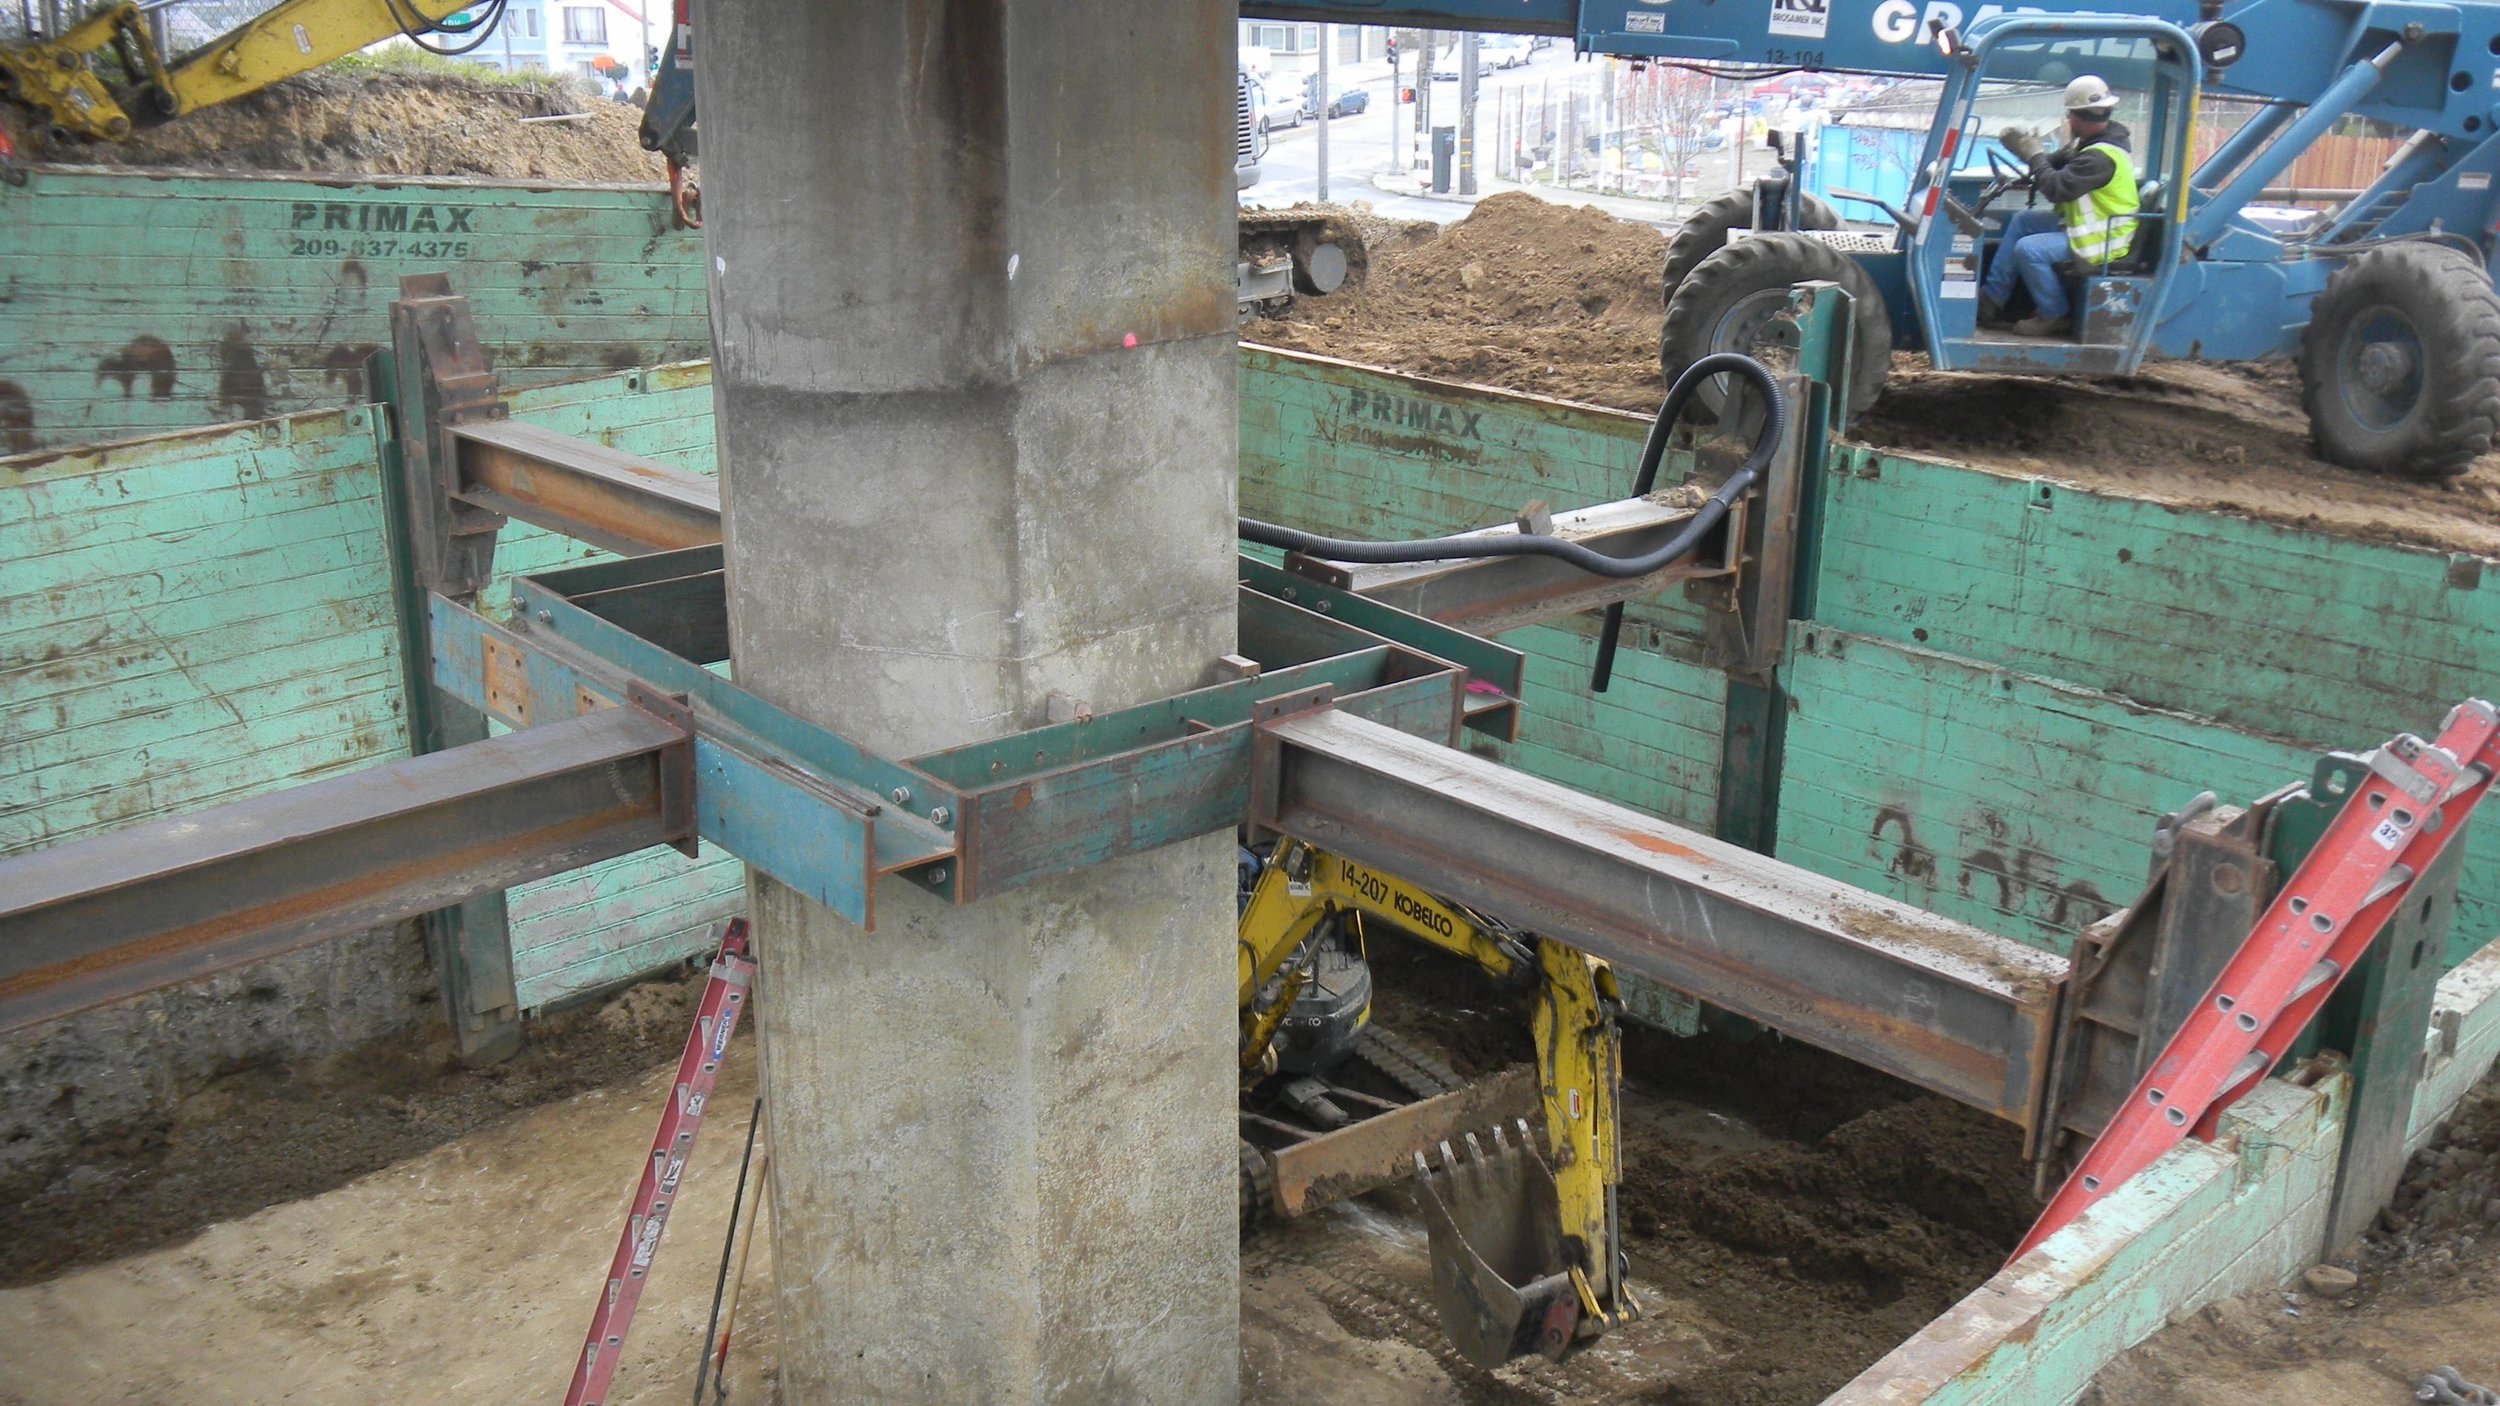 Seismic Retrofit BART - Telescopic System for Overhead Obstacles - R&L Brosamer.jpg